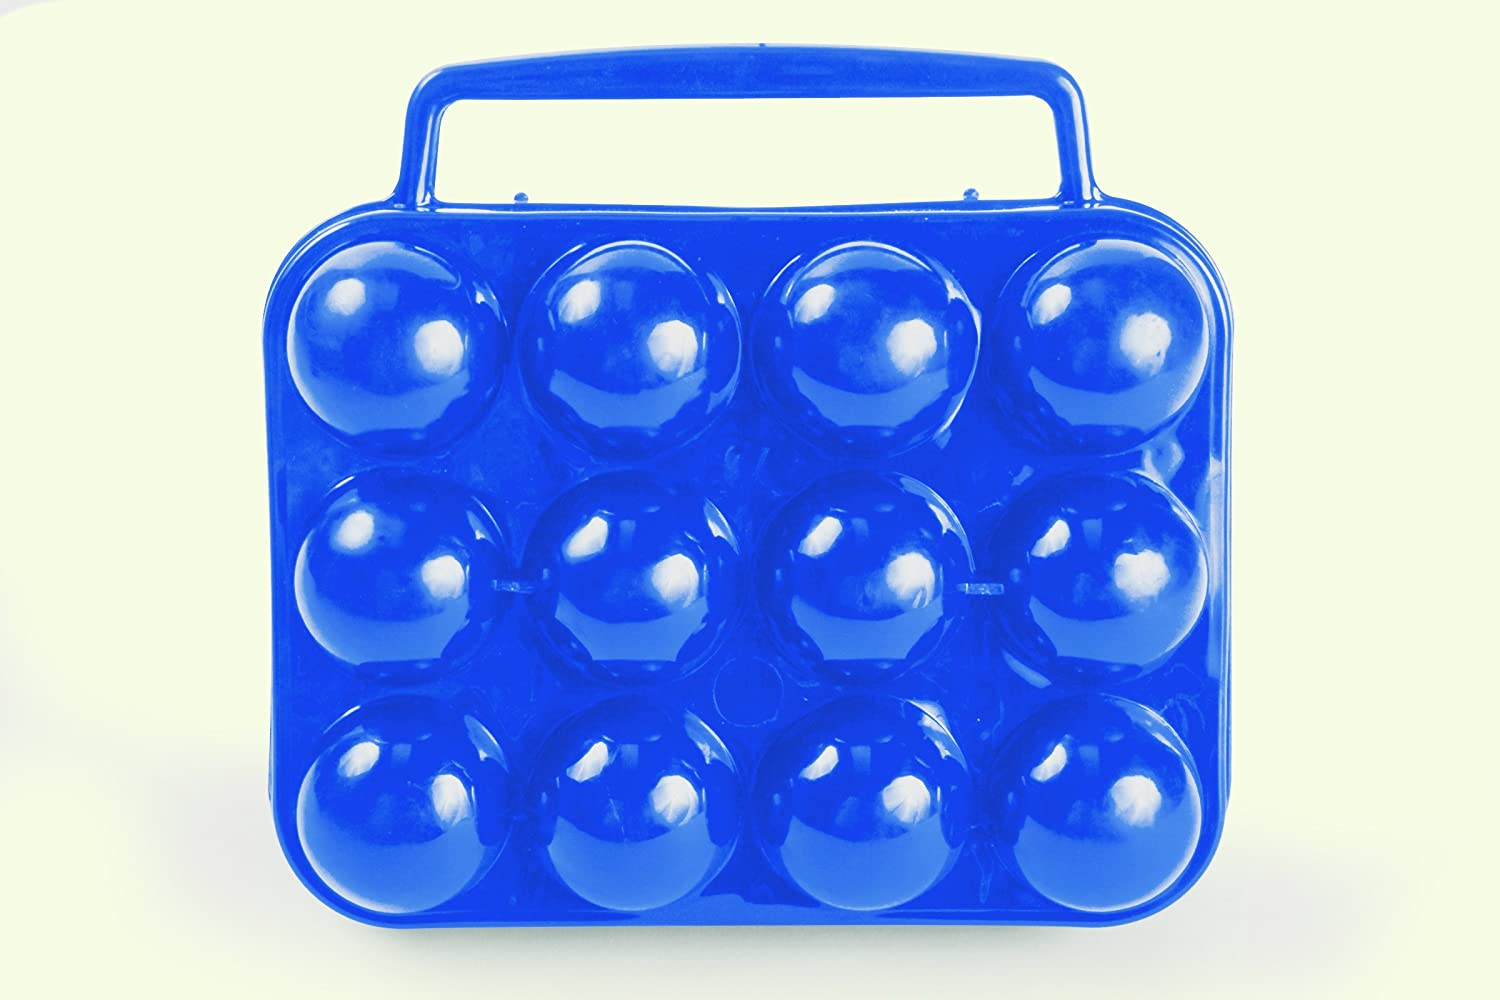 Camco Egg Carrier-Holder - Organize Eggs and Prevent Eggs from Cracking, Easily Fits into Your Refrigerator , Great for RV, Trailer and Camper Kitchens or CampingHolds A Dozen of Eggs (51015)